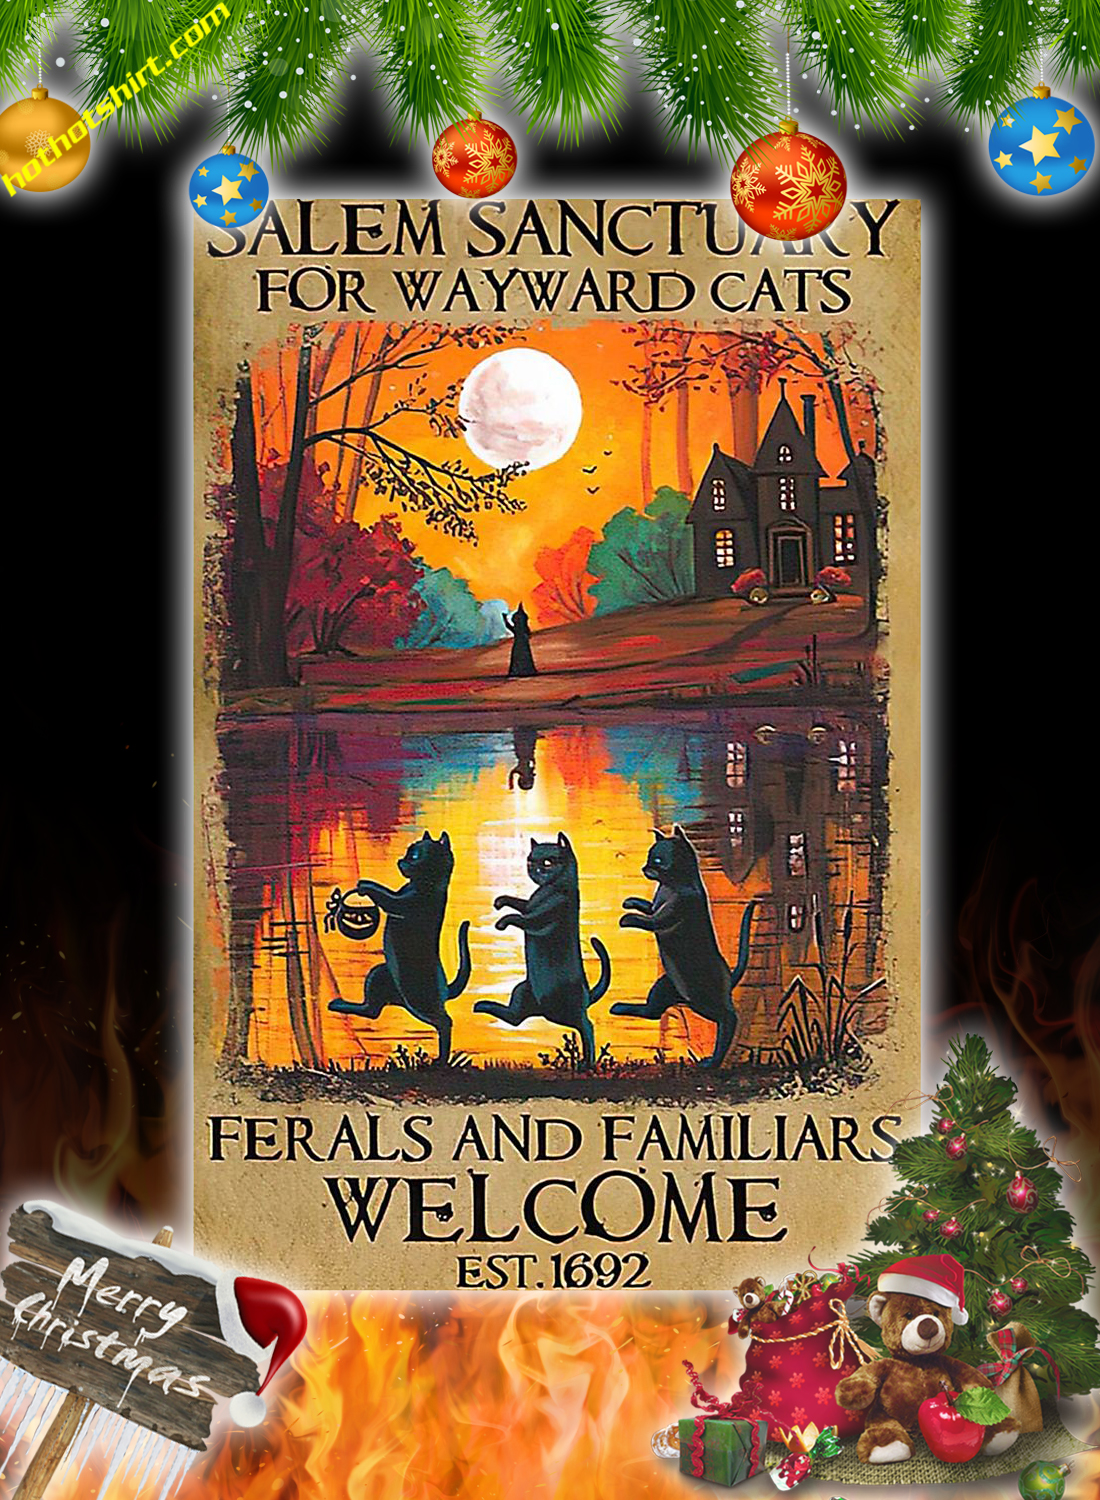 Salem sanctuary for wayward cats poster 1